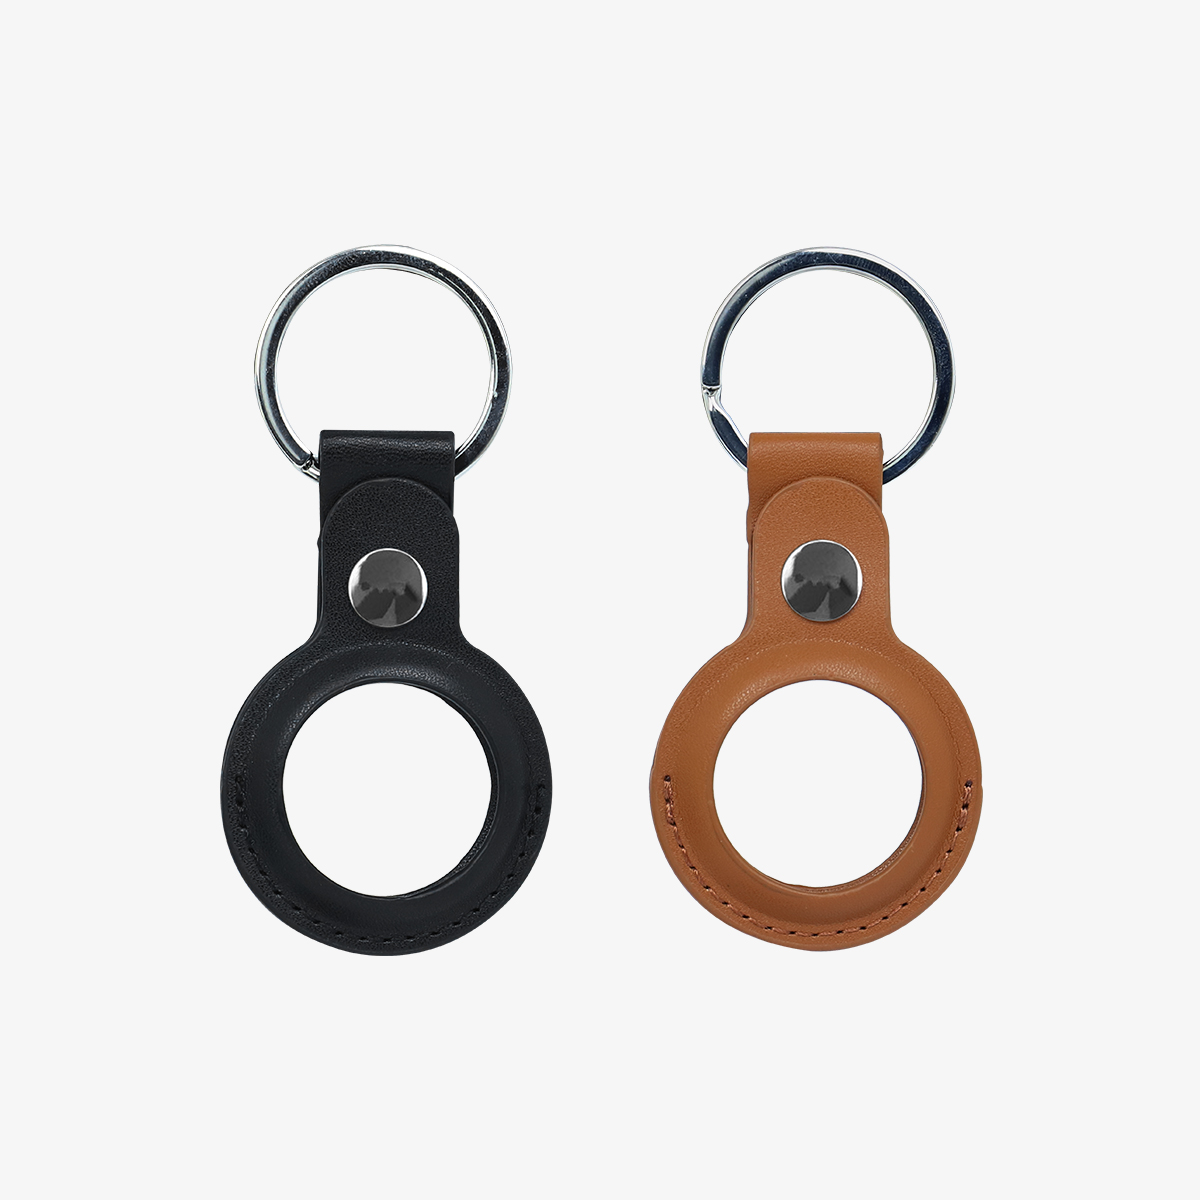 inno3C   For AirTag Leather Protective Case Set